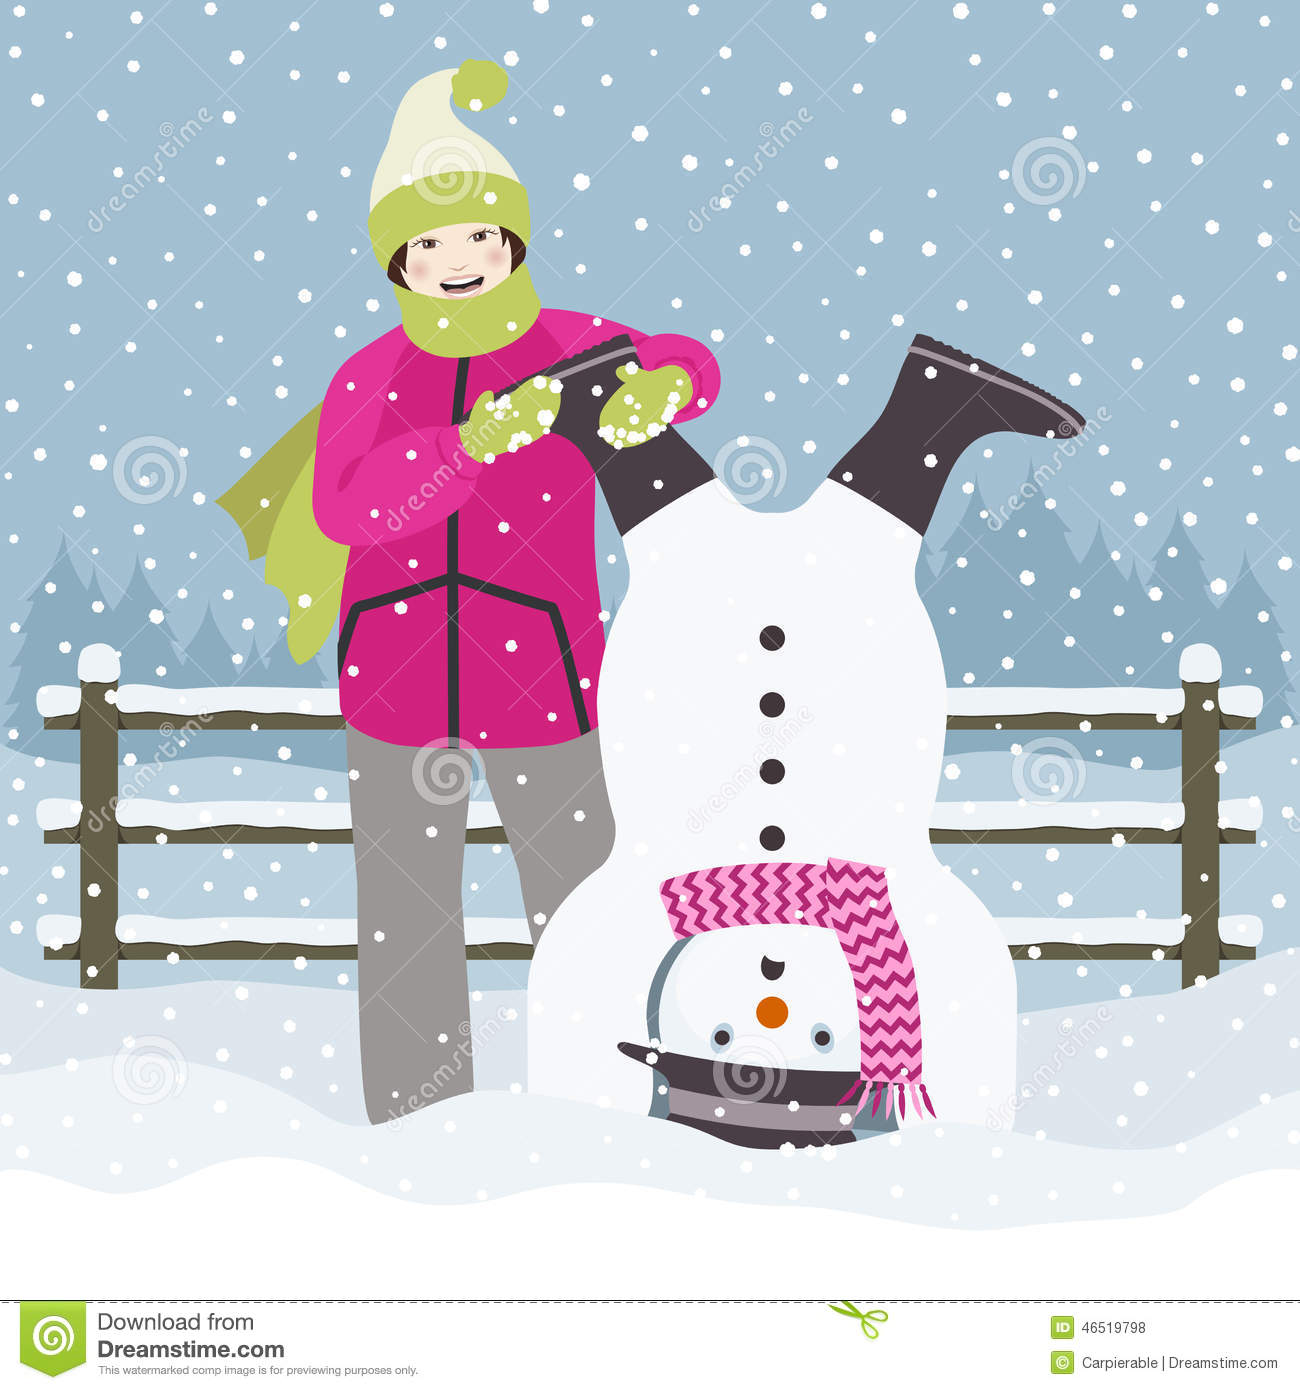 Girl And Snowman Down Stock Vector - Image: 46519798